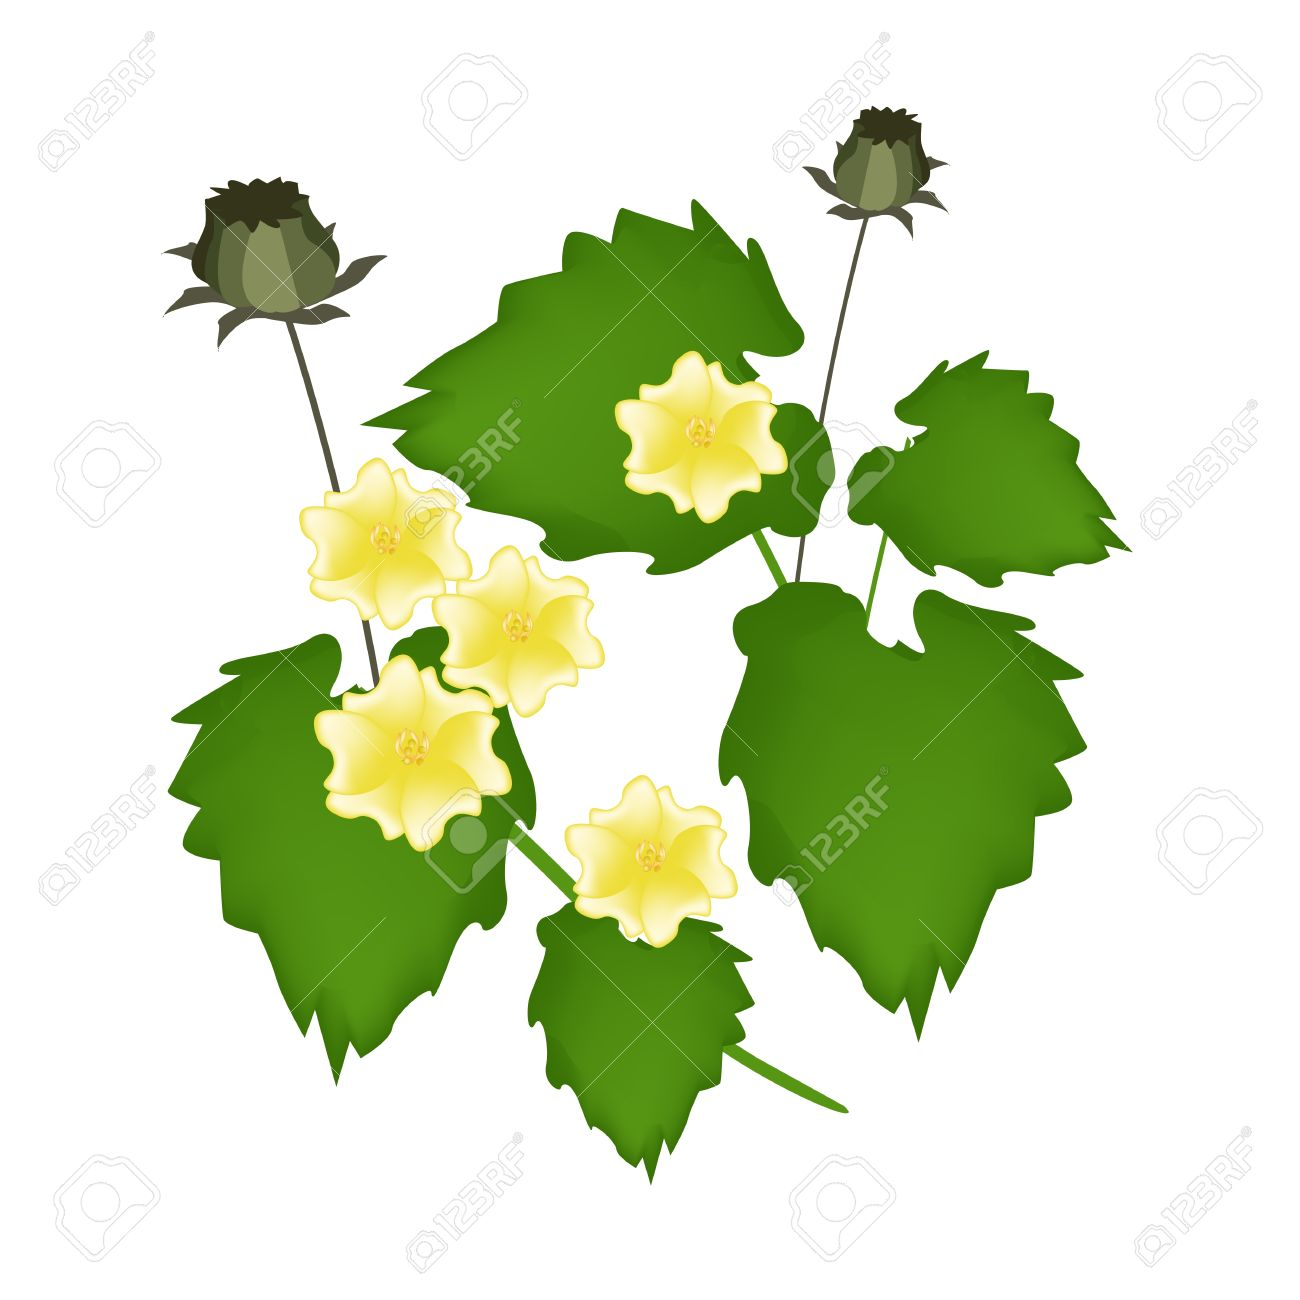 Abutilon clipart #14, Download drawings